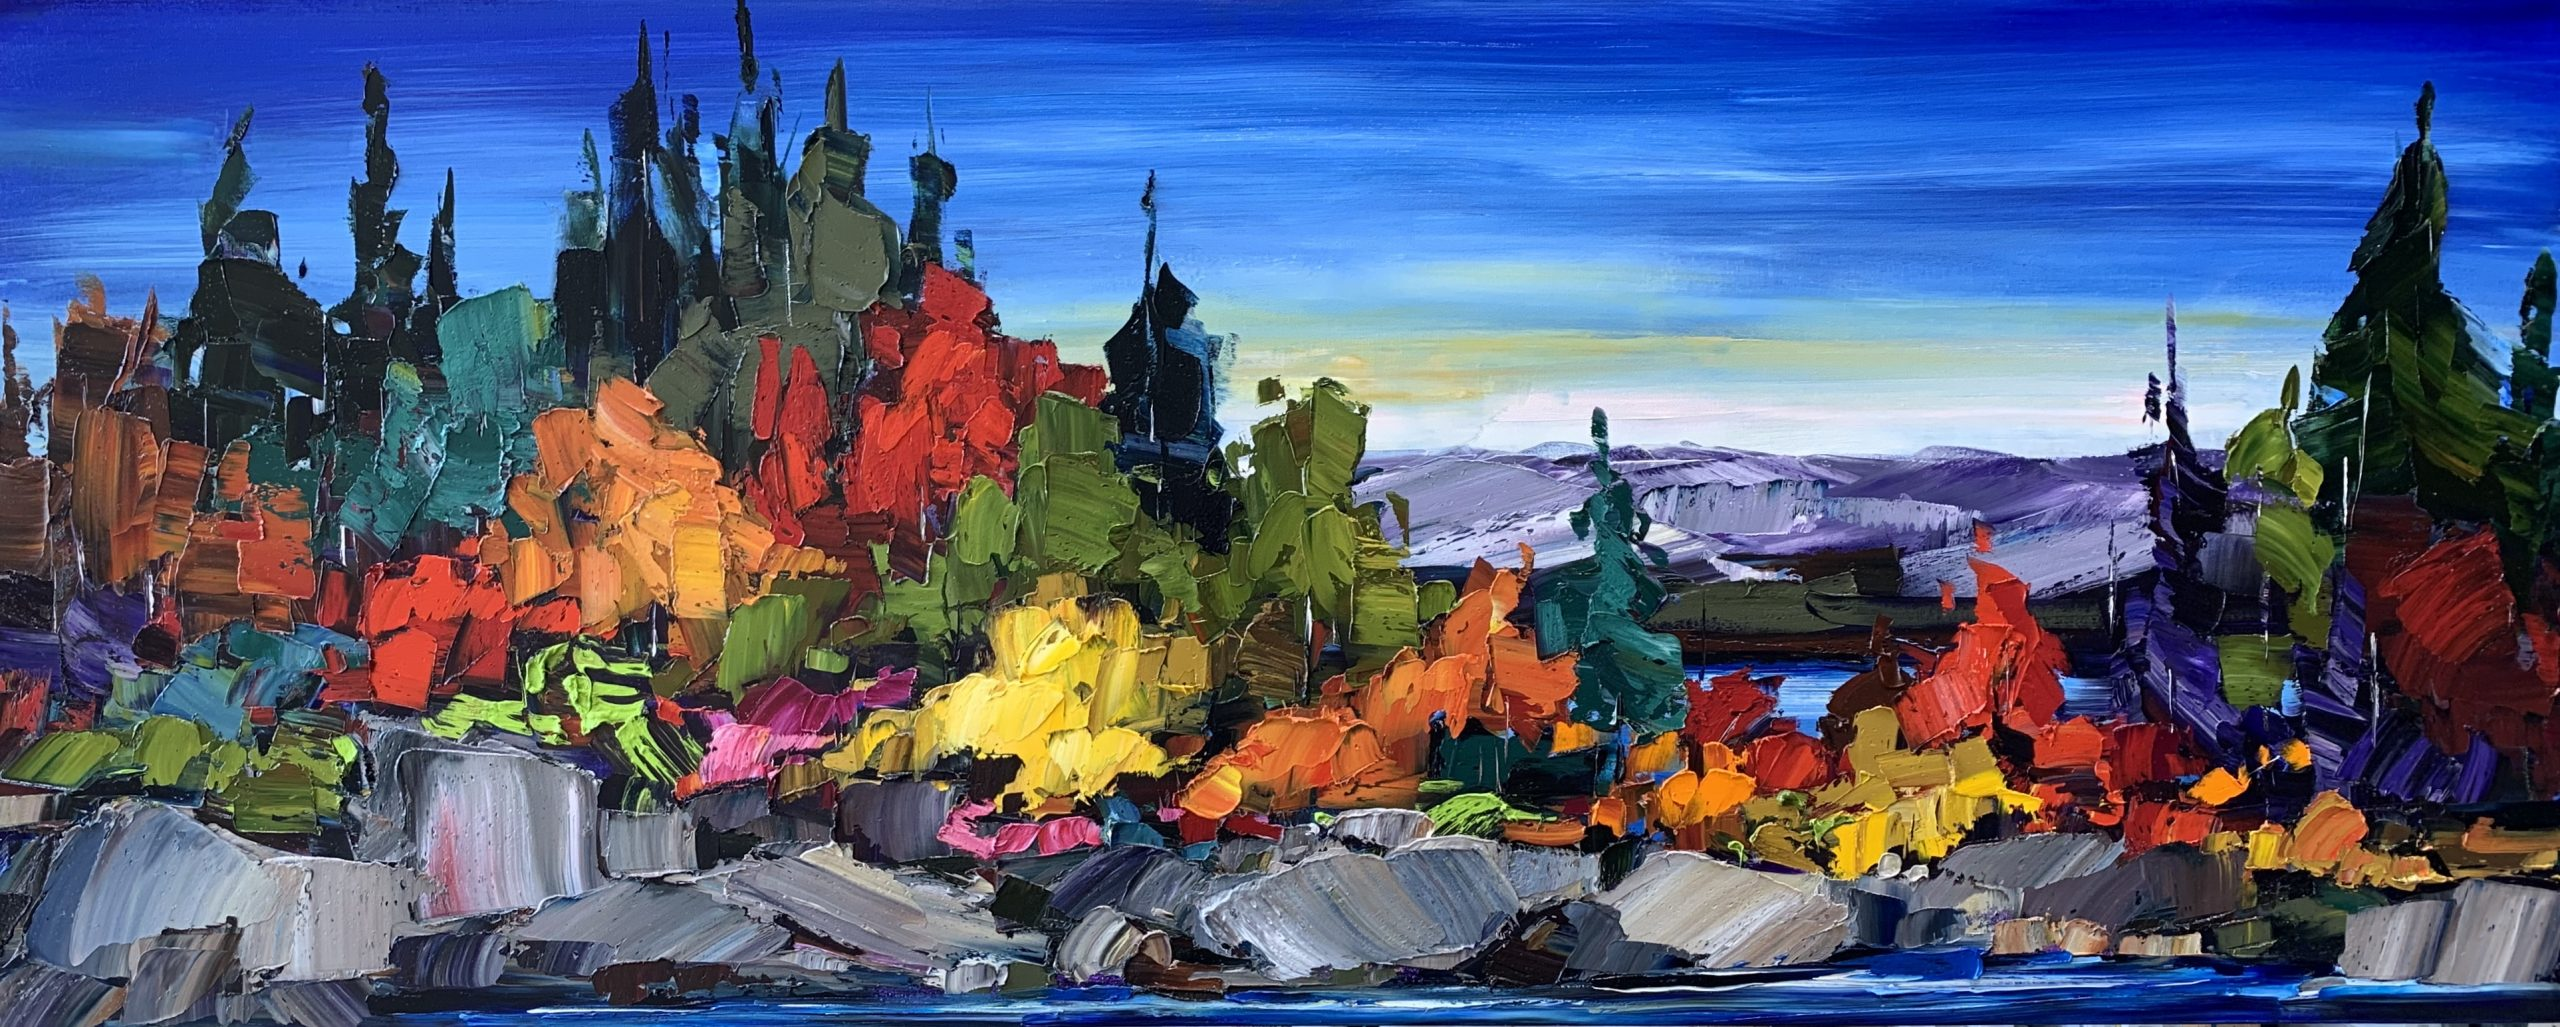 All These Places, oil landscape painting by Kimberly Kiel | Effusion Art Gallery + Cast Glass Studio, Invermere BC